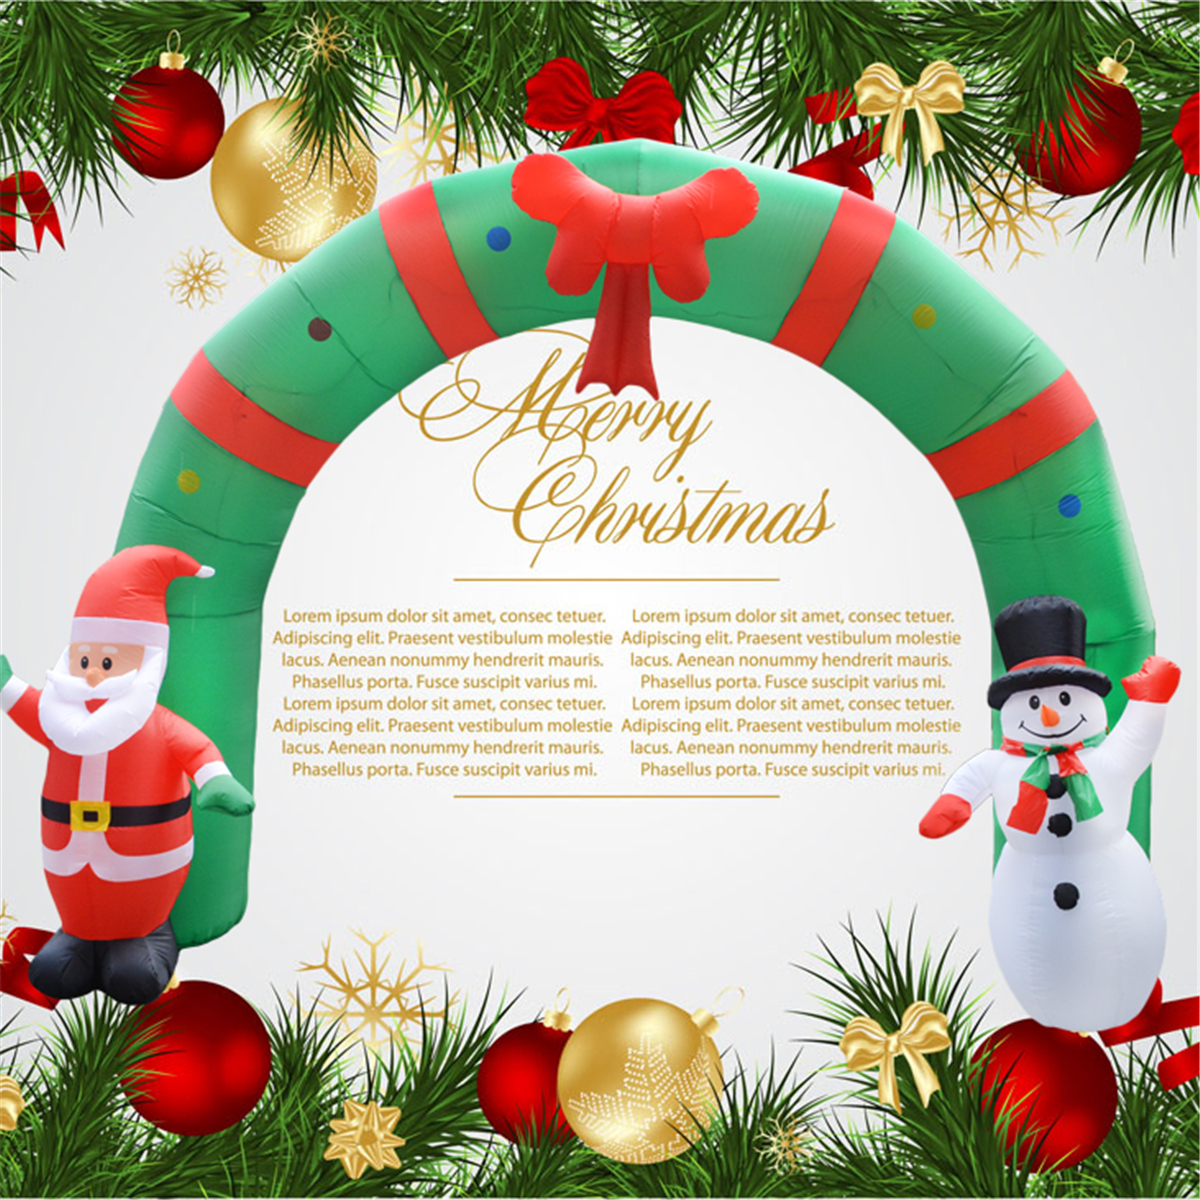 250cm Huge Inflatable Christmas Arch ArchwaySanta Snowman Indoor ...